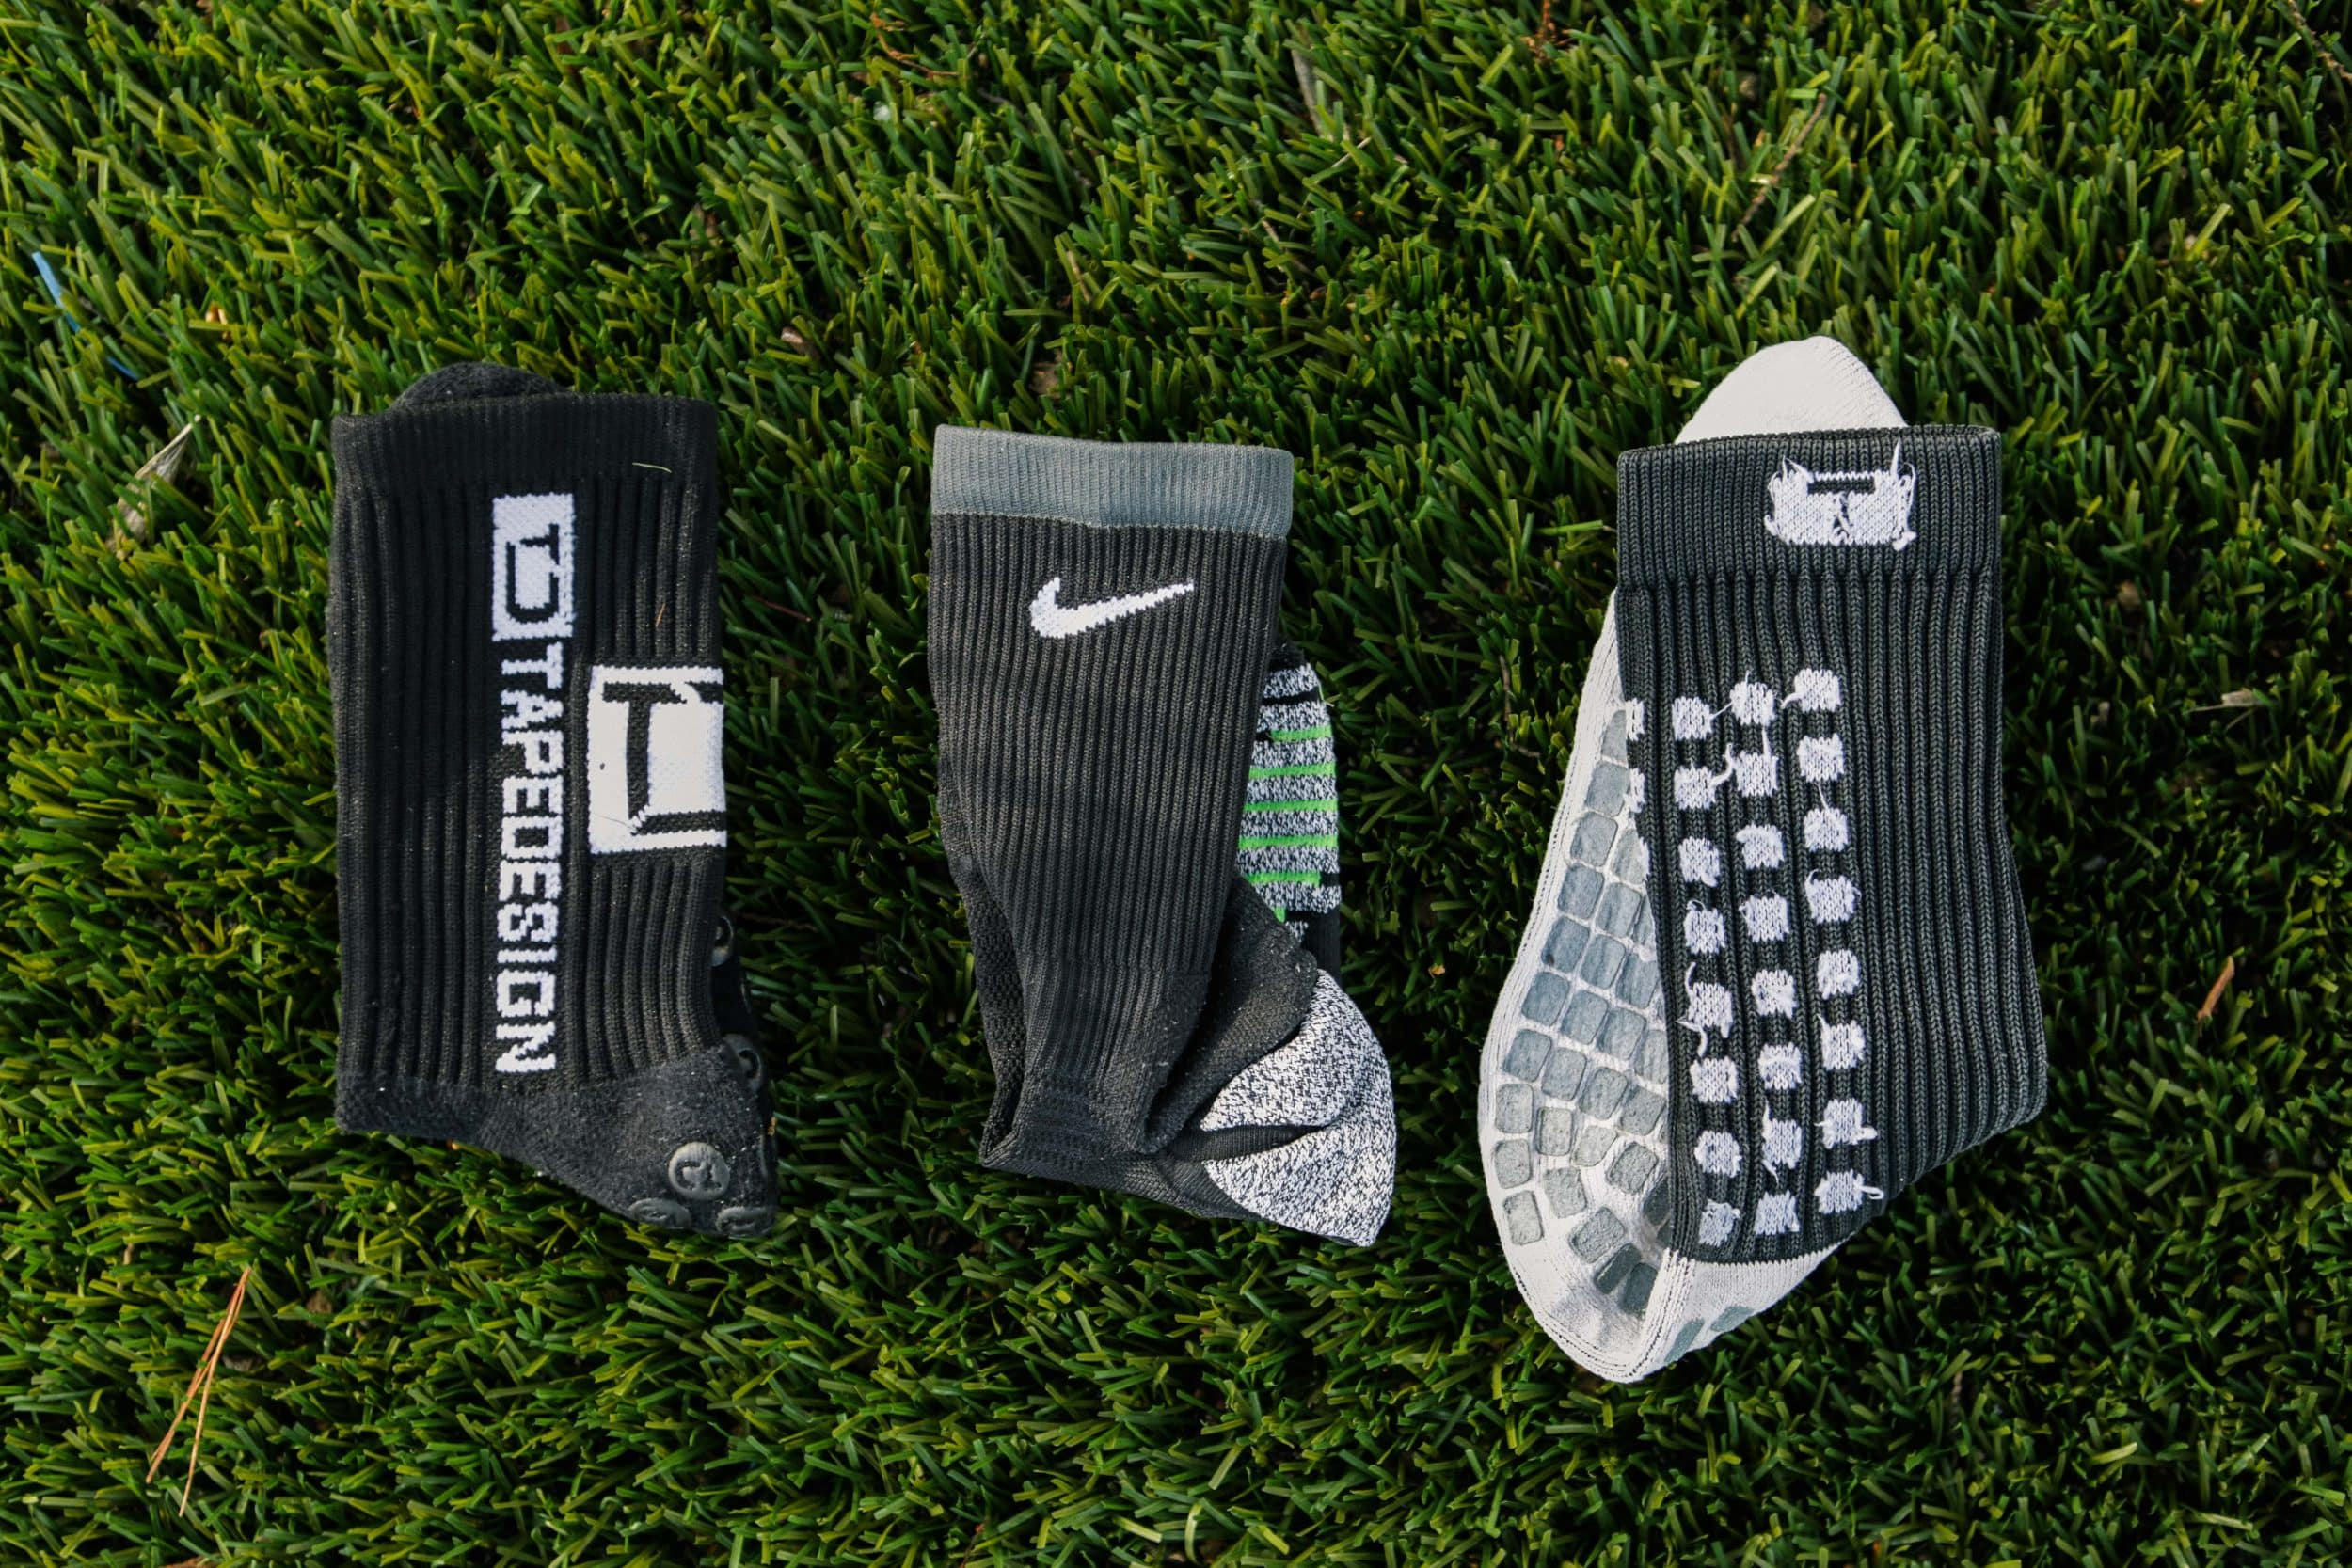 guide-chaussettes-football-performance-trusox-nike-grip-tape-design